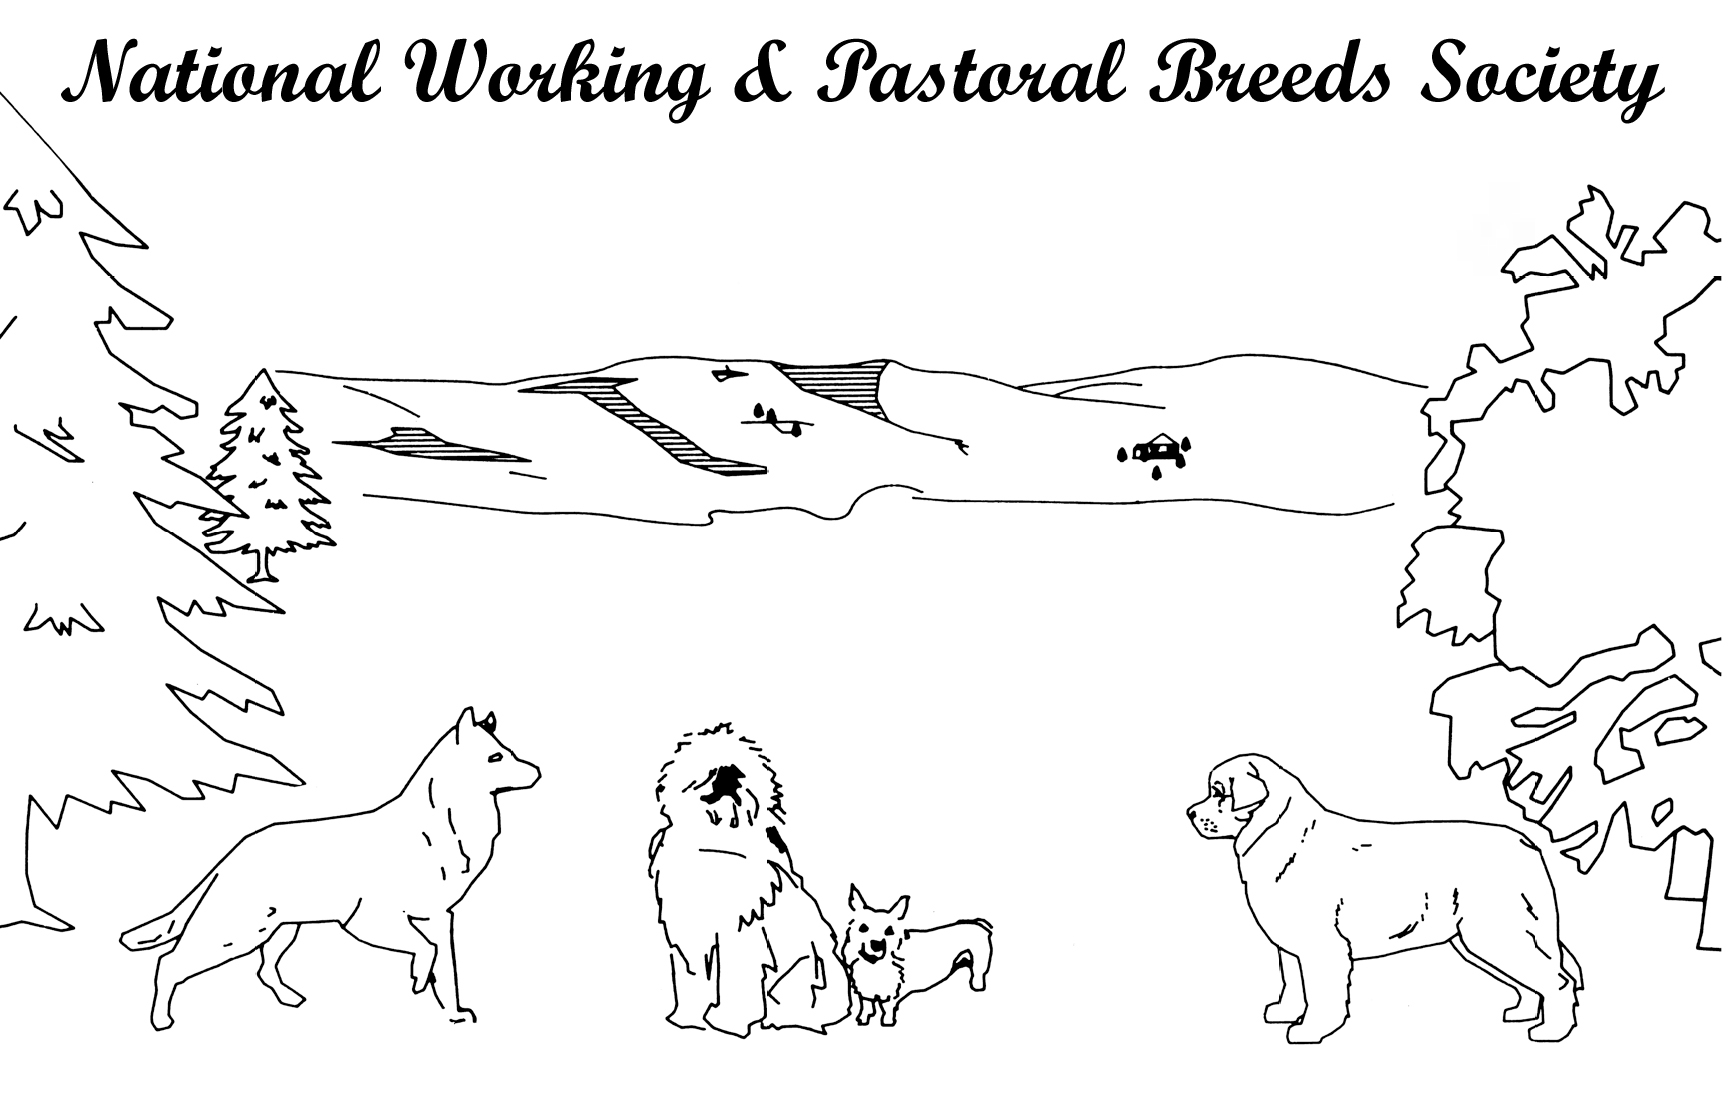 NATIONAL WORKING & PASTORAL BREEDS SOCIETY